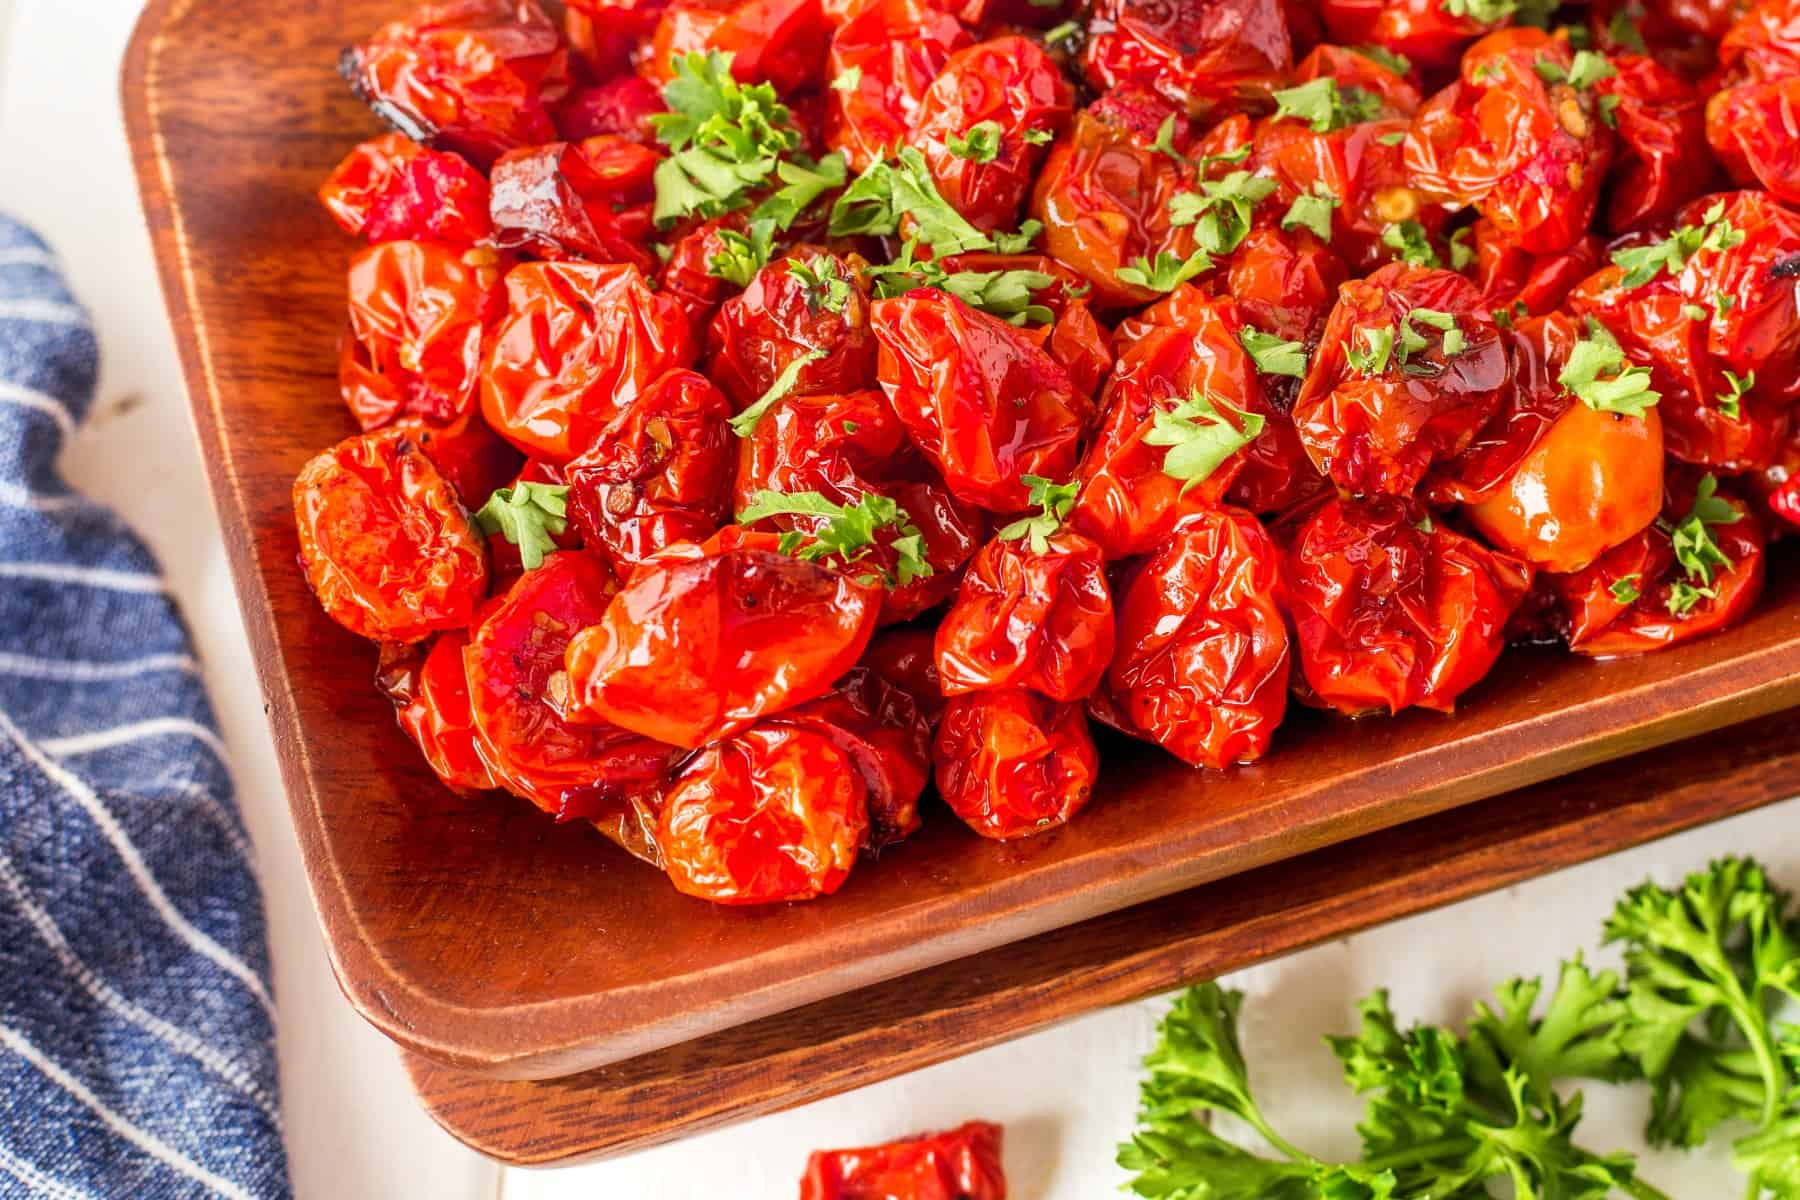 Horizontal of cooked tomatoes in a wooden bowl.